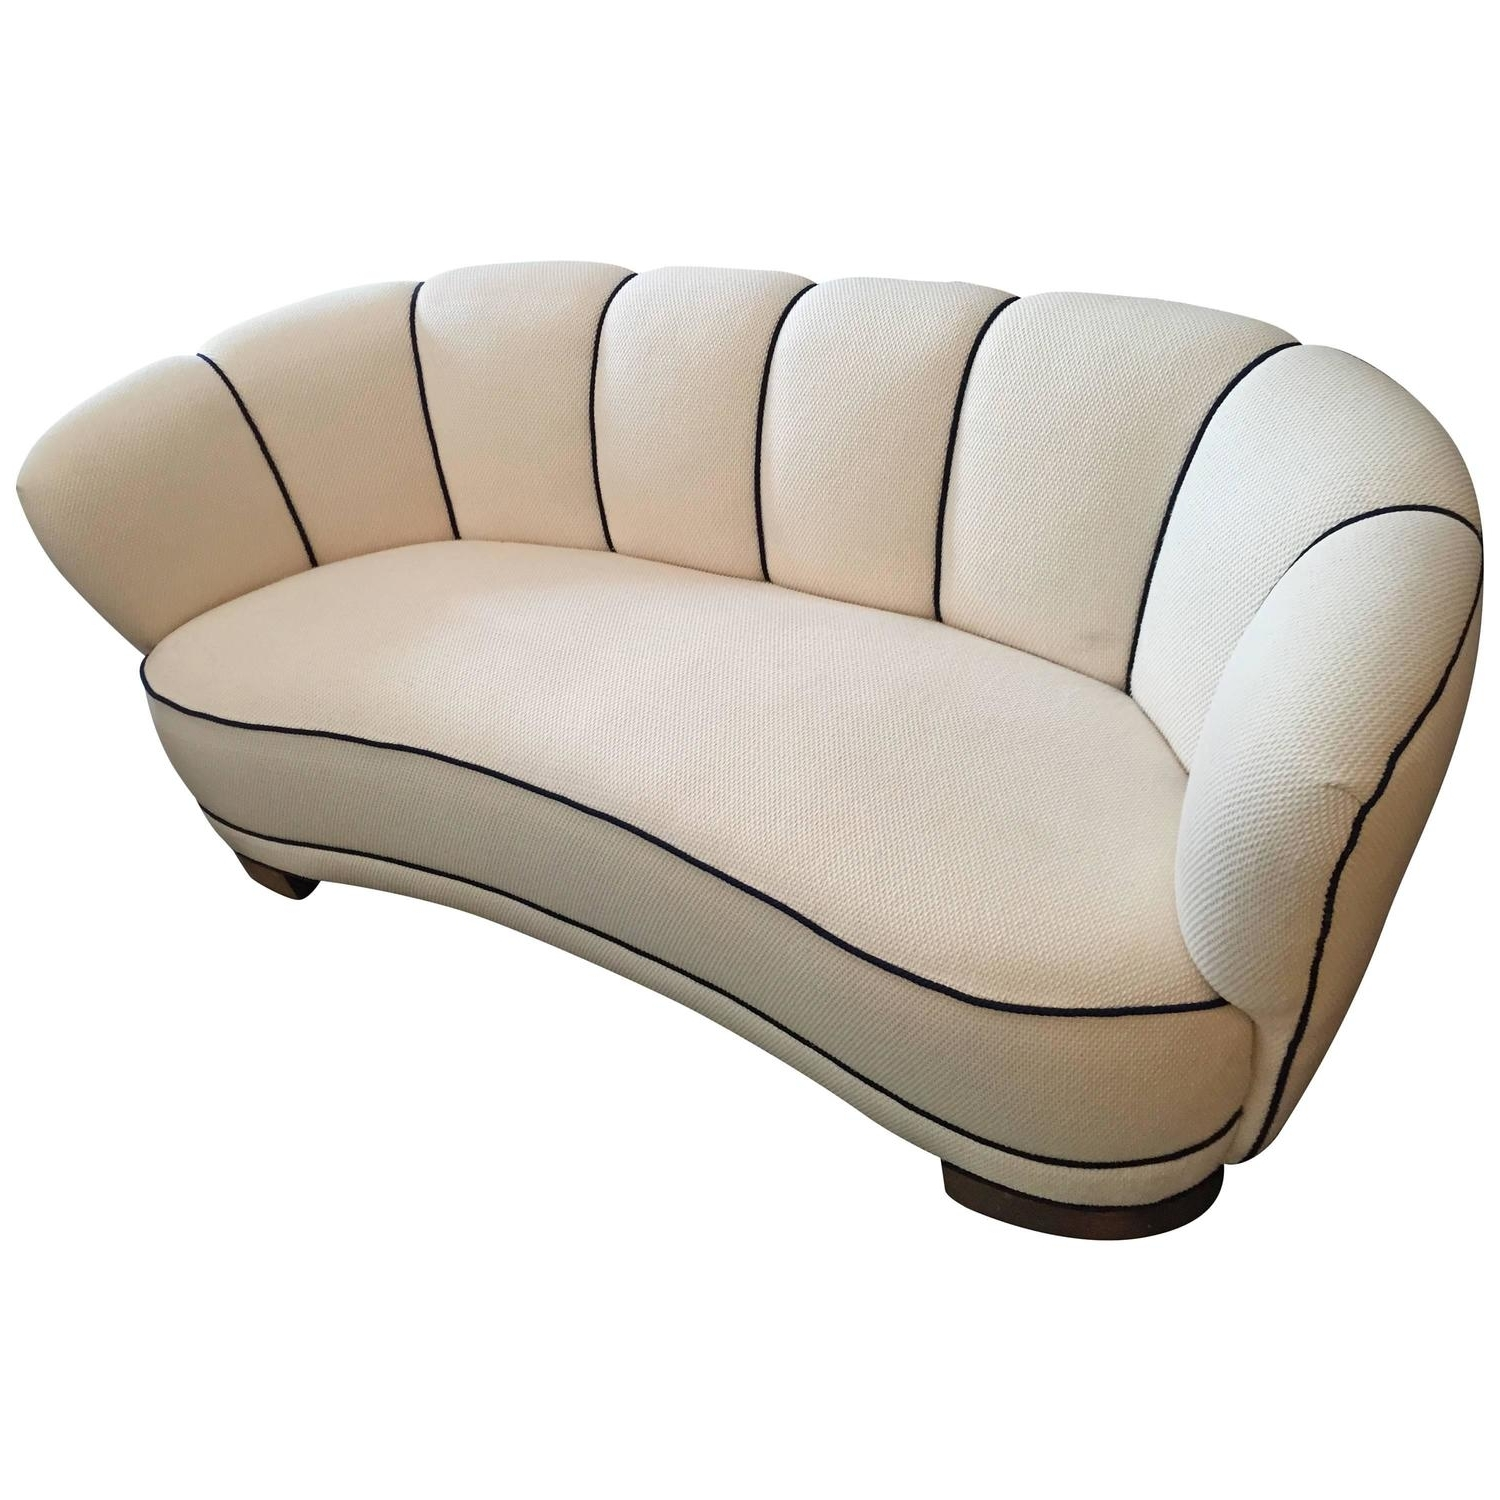 Art Deco Sofas With Regard To Current Amazing Art Deco Sofa 66 On Sofa Design Ideas With Art Deco Sofa (View 2 of 20)